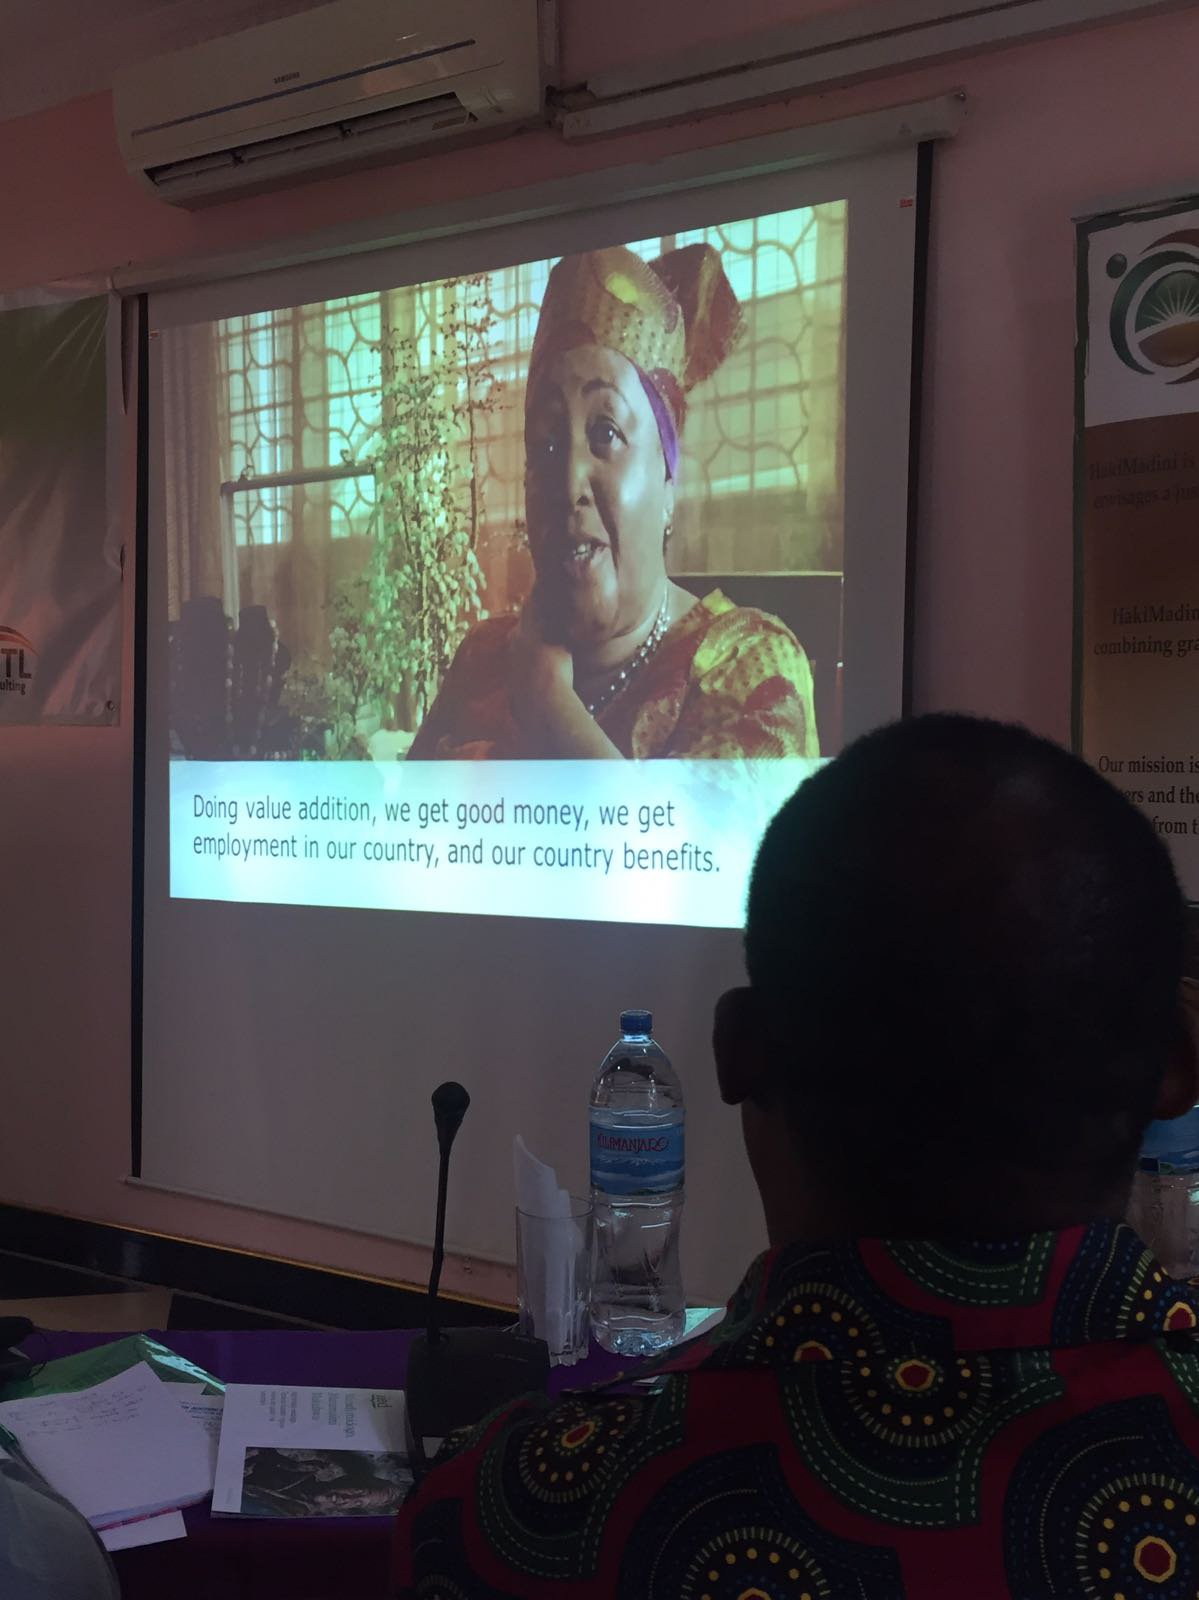 @fittwittar @HakiMadini2012 The Tanzania dialogue participants begin the workshop by watching a film produced for the recent @IGFMining annual meeting on stories of change in artisanal & small-scale mining #ASM https://t.co/bYGGaG8kKM